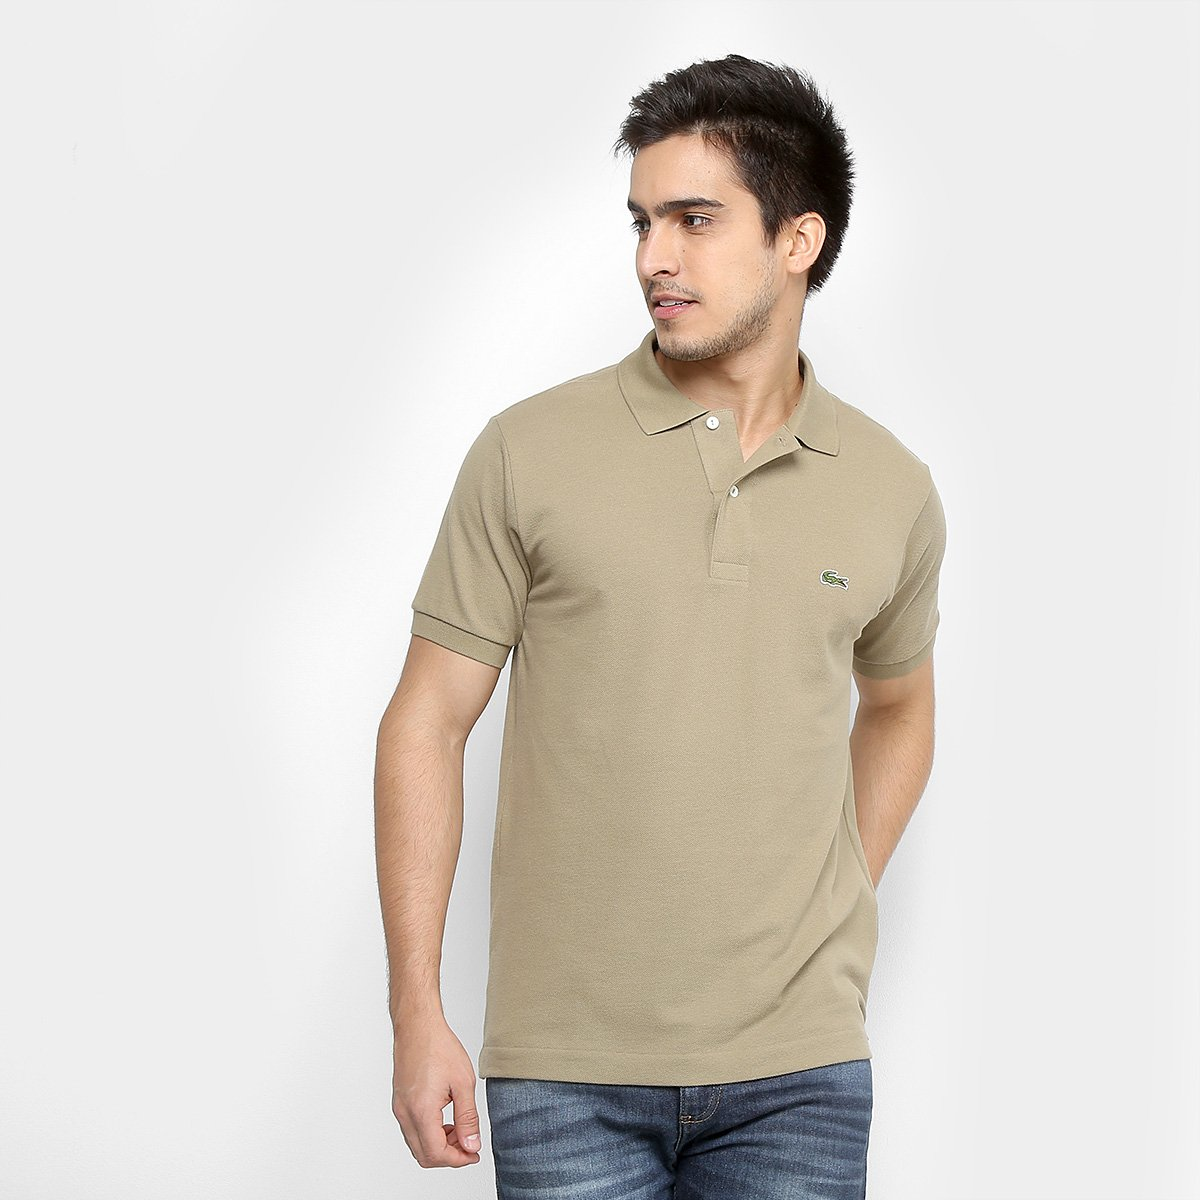 fe33453ef4134 Camisa Polo Lacoste Piquet Original Fit Masculina